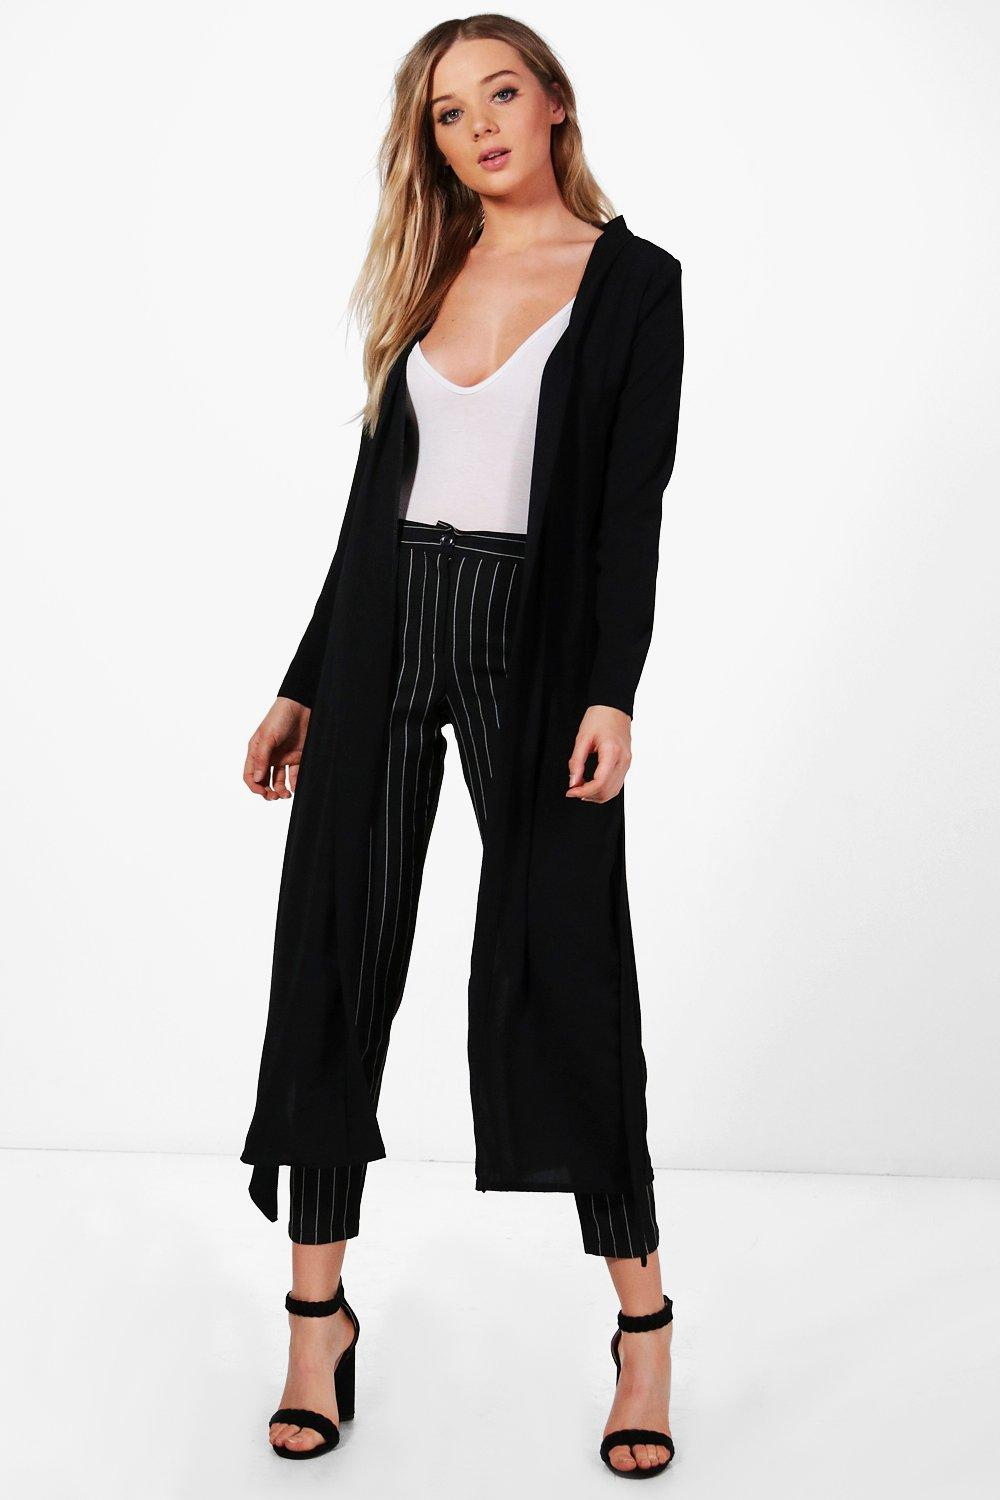 NEW-Boohoo-Womens-Sarah-Split-Back-Tailored-Duster-in